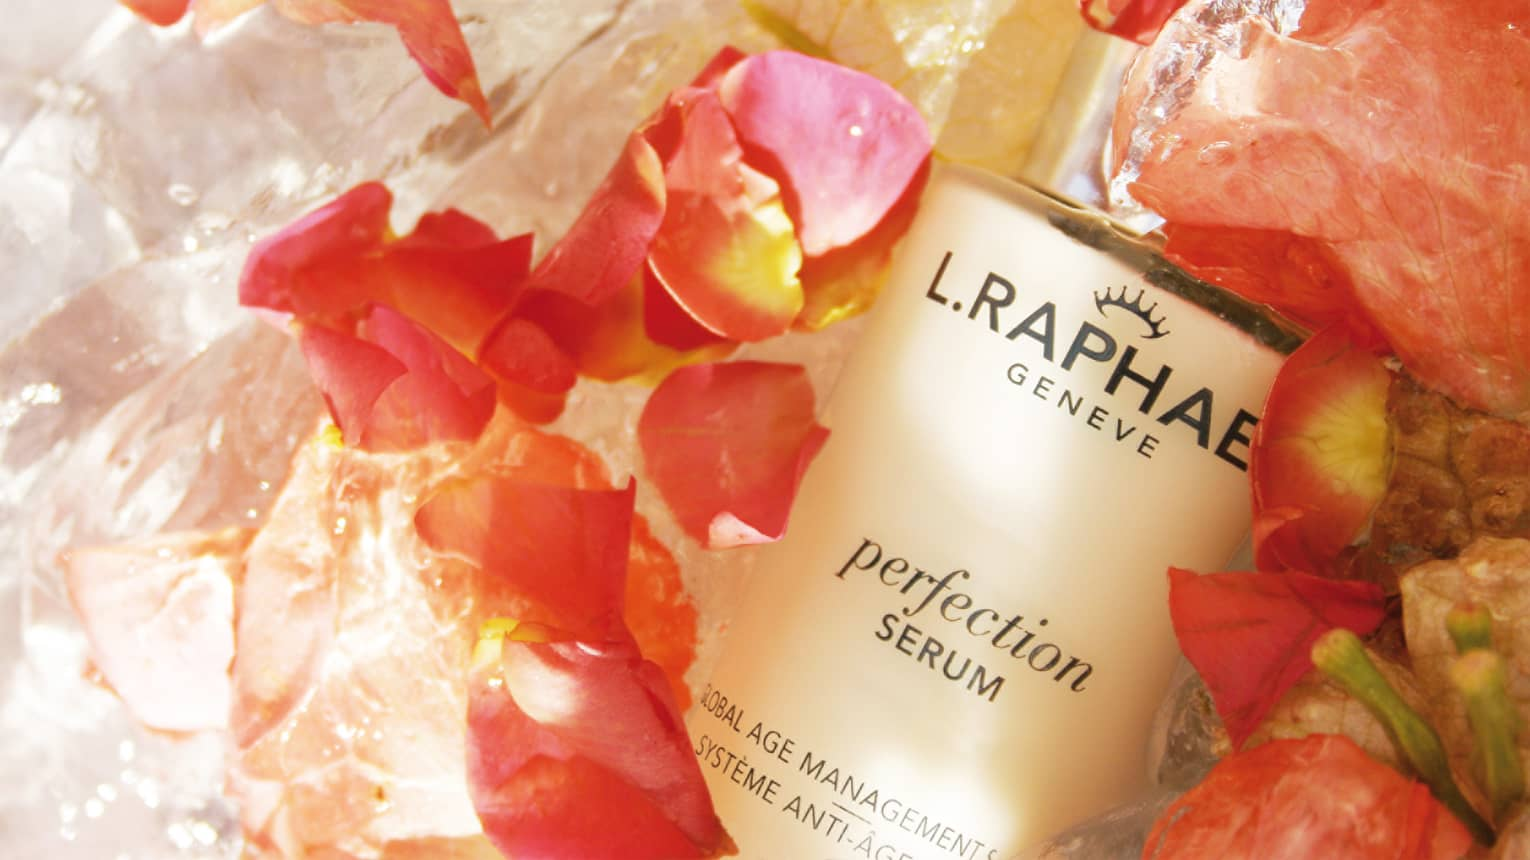 Close-up of bottle of L.RAPHAEL facial serum surrounded by fresh pink flower petals